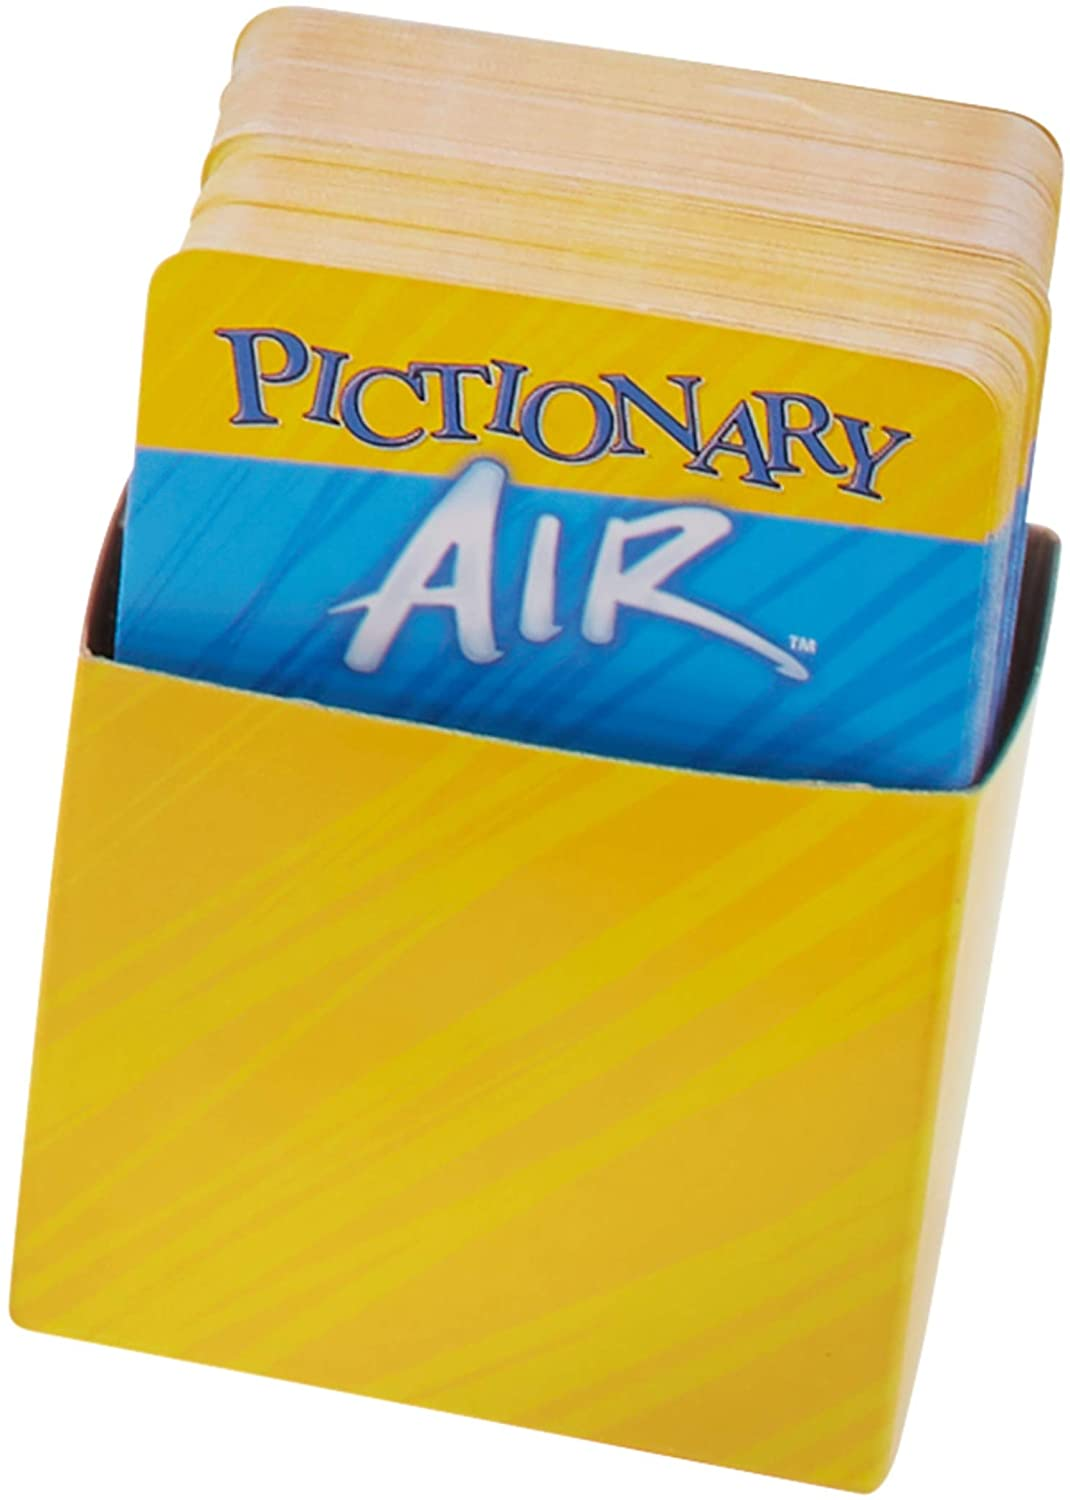 Pictionary Air.